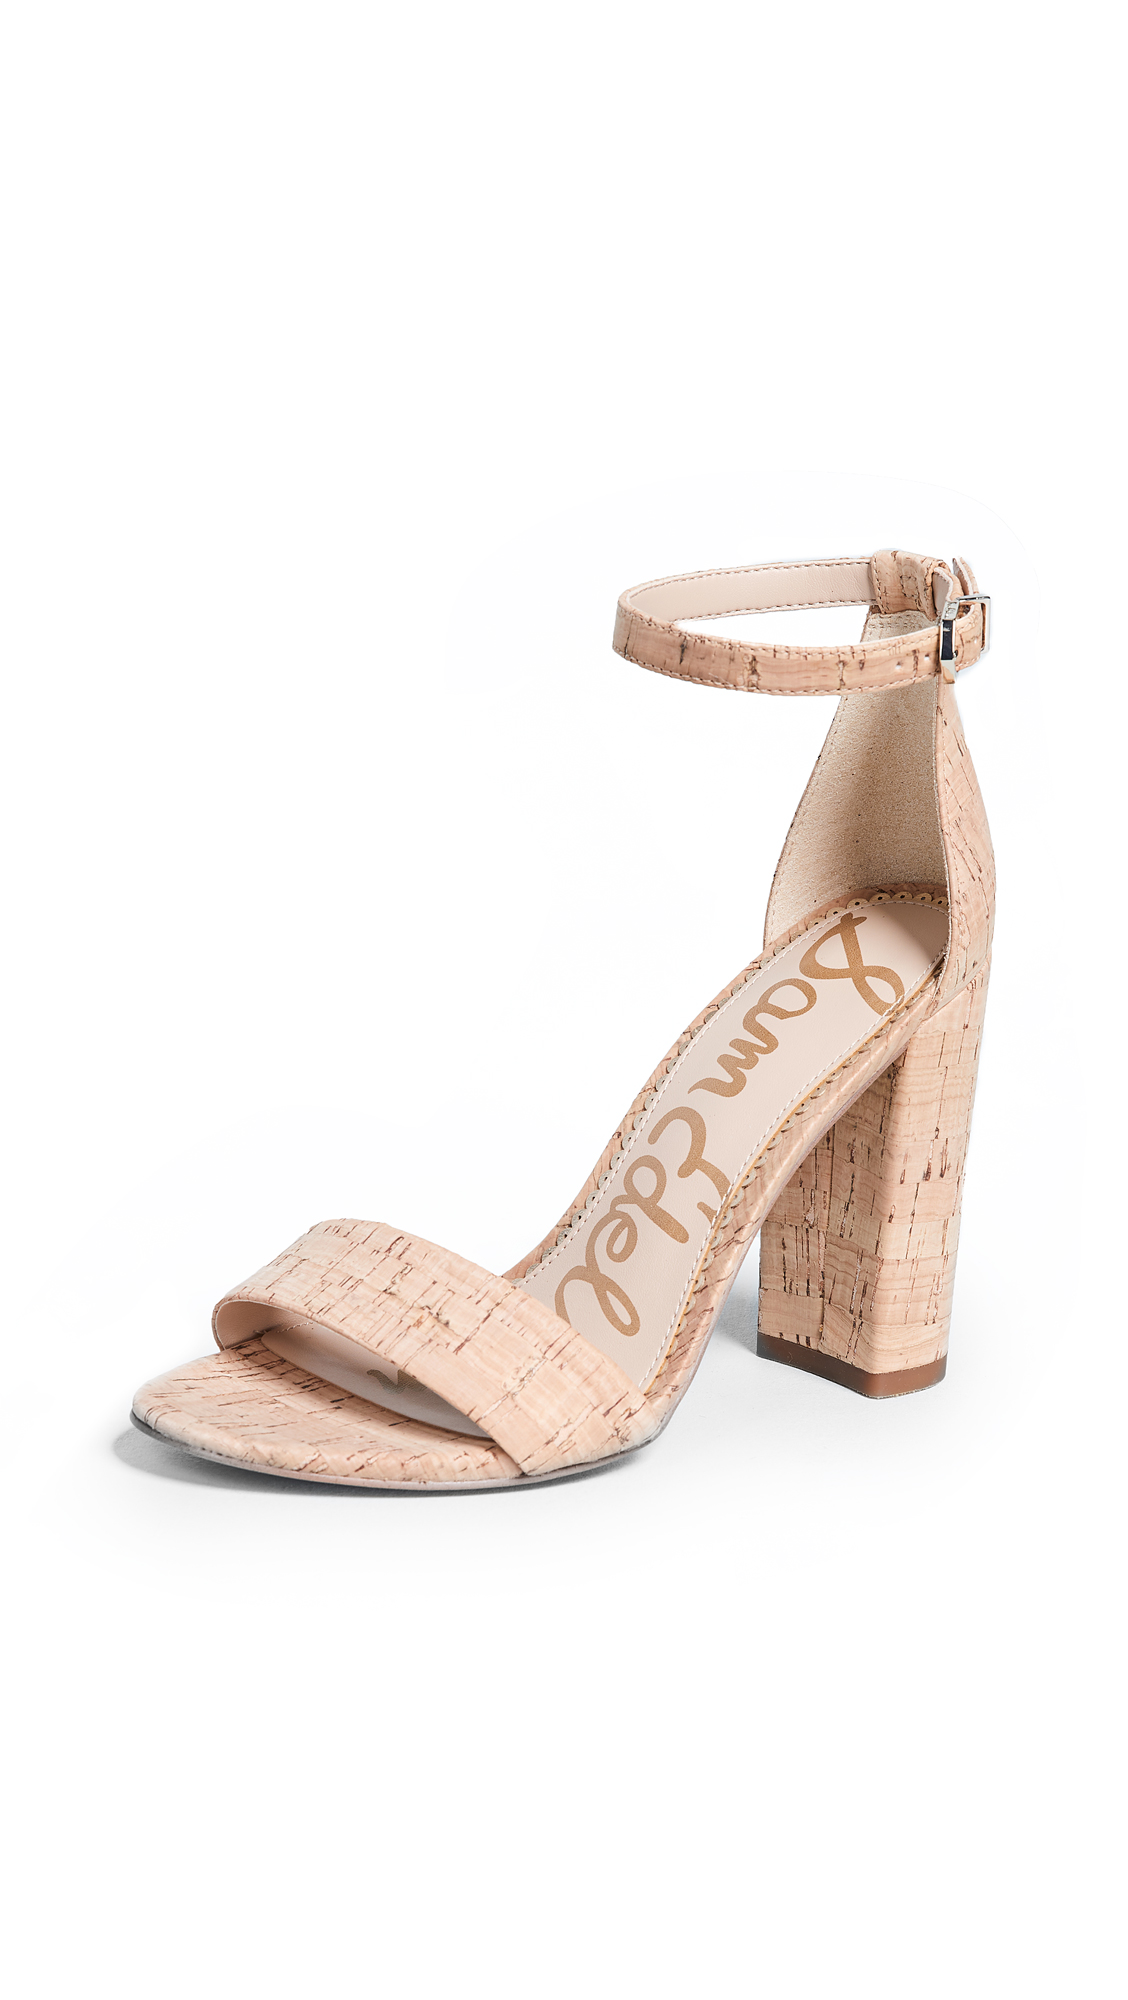 Sam Edelman Yaro Sandals - Natural